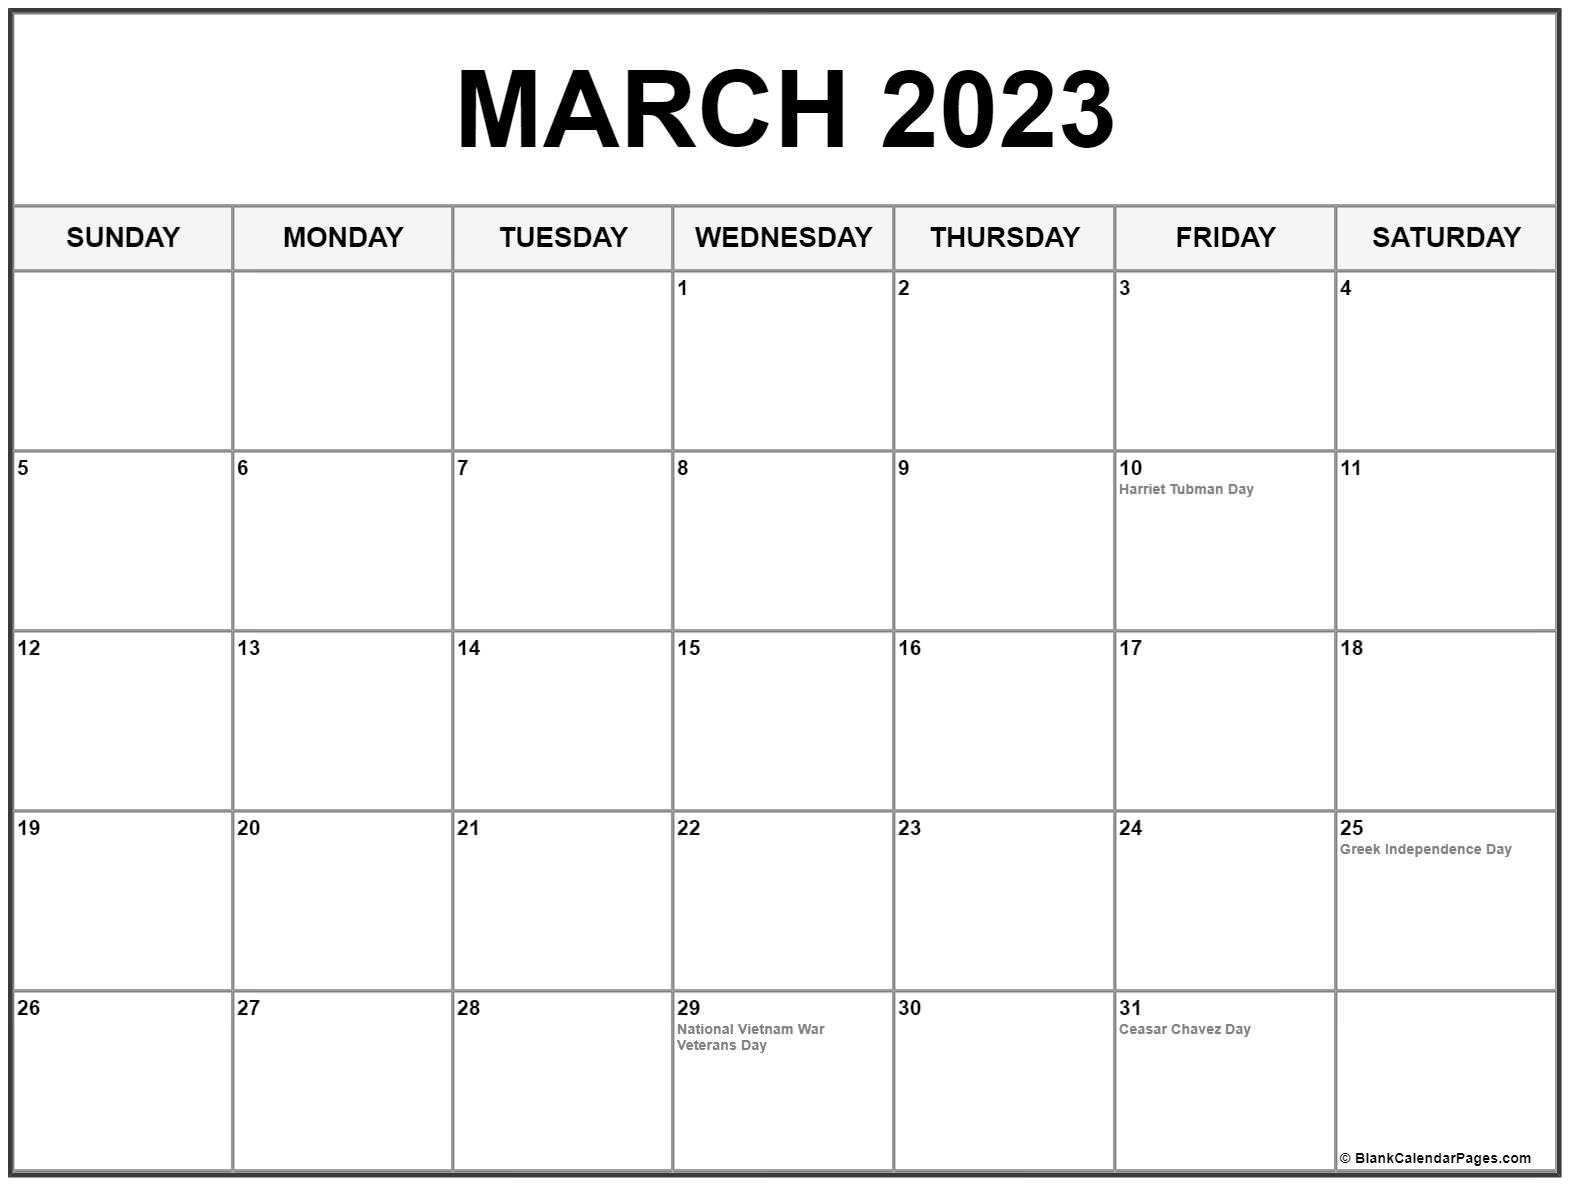 March 2023 calendar with holidays